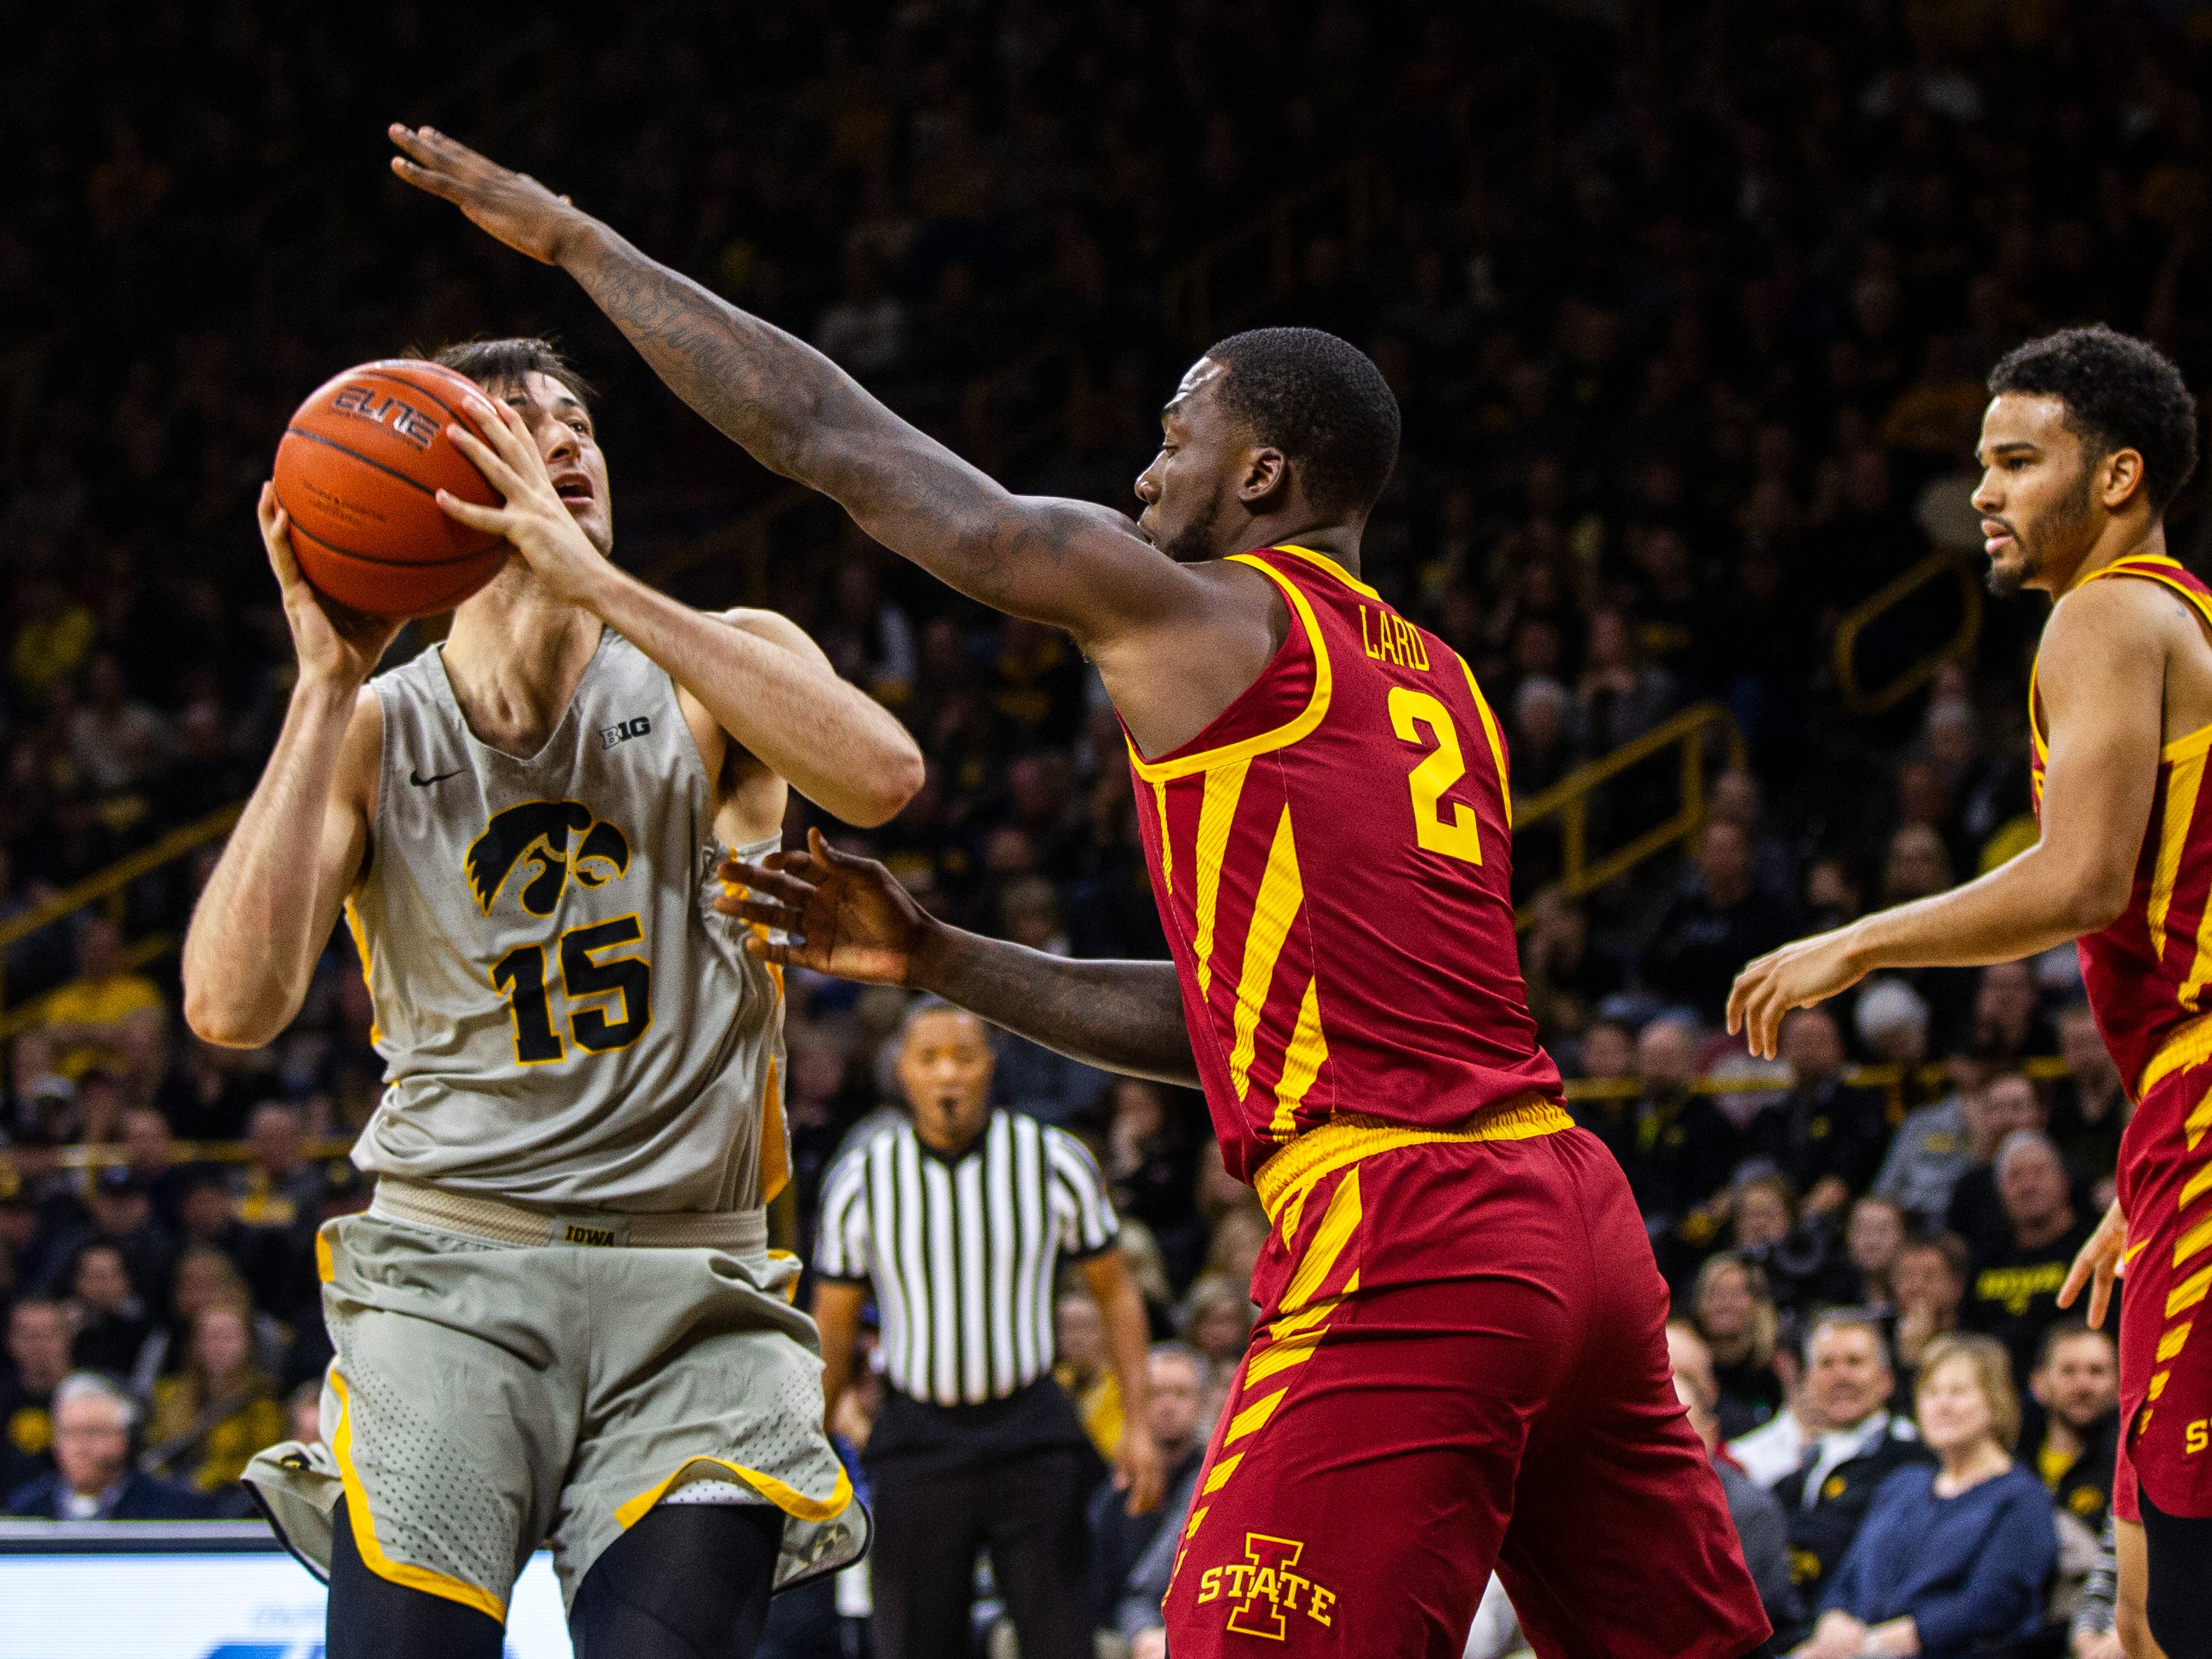 Iowa forward Ryan Kriener (15) attempts a basket while being defended by Iowa State forward Cameron Lard (2) during a NCAA Cy-Hawk series men's basketball game on Thursday, Dec. 6, 2018, at Carver-Hawkeye Arena in Iowa City.